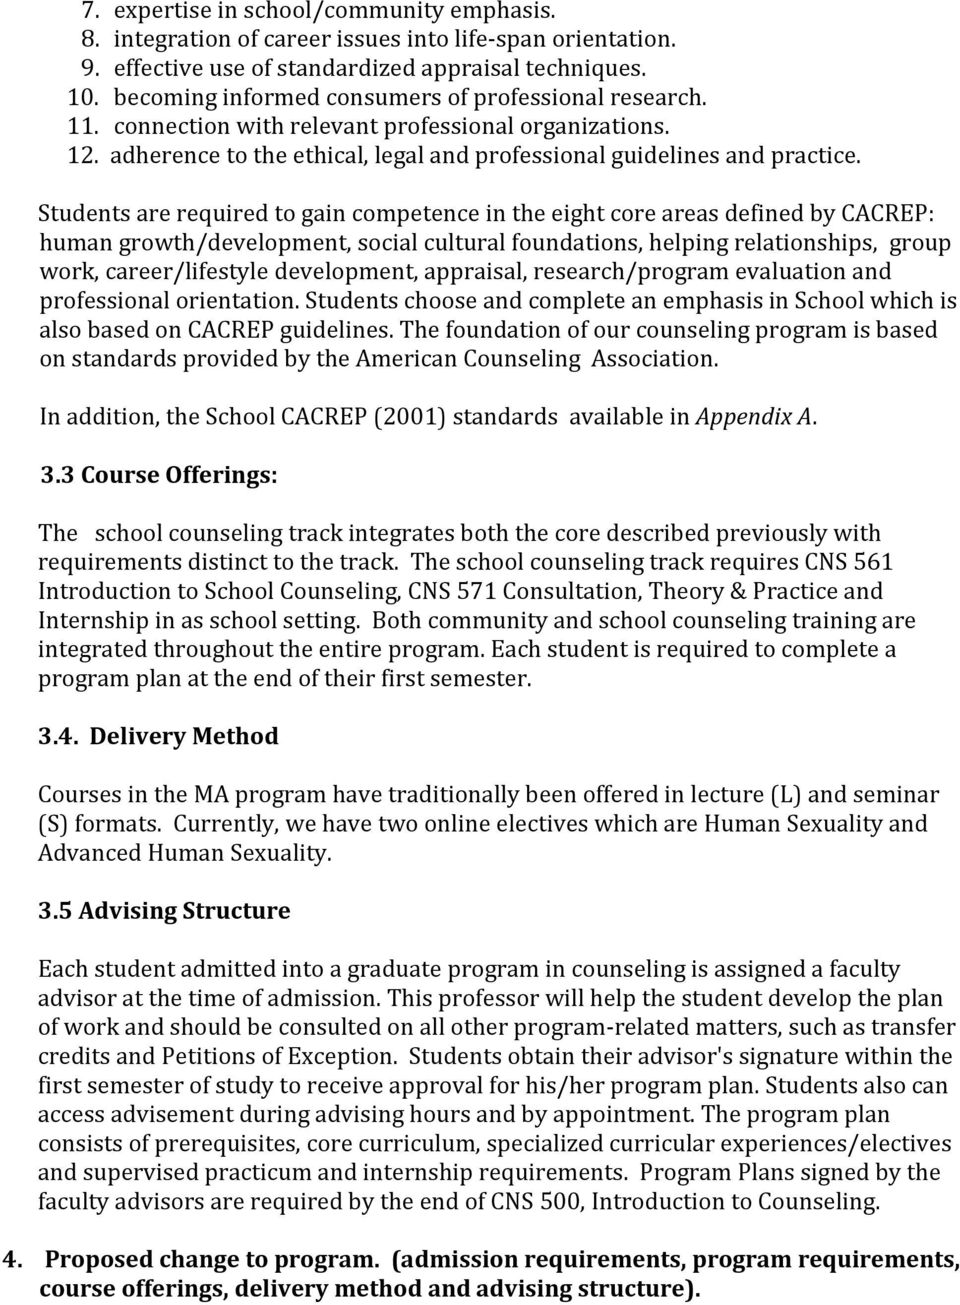 Students are required to gain competence in the eight core areas defined by CACREP: human growth/development, social cultural foundations, helping relationships, group work, career/lifestyle